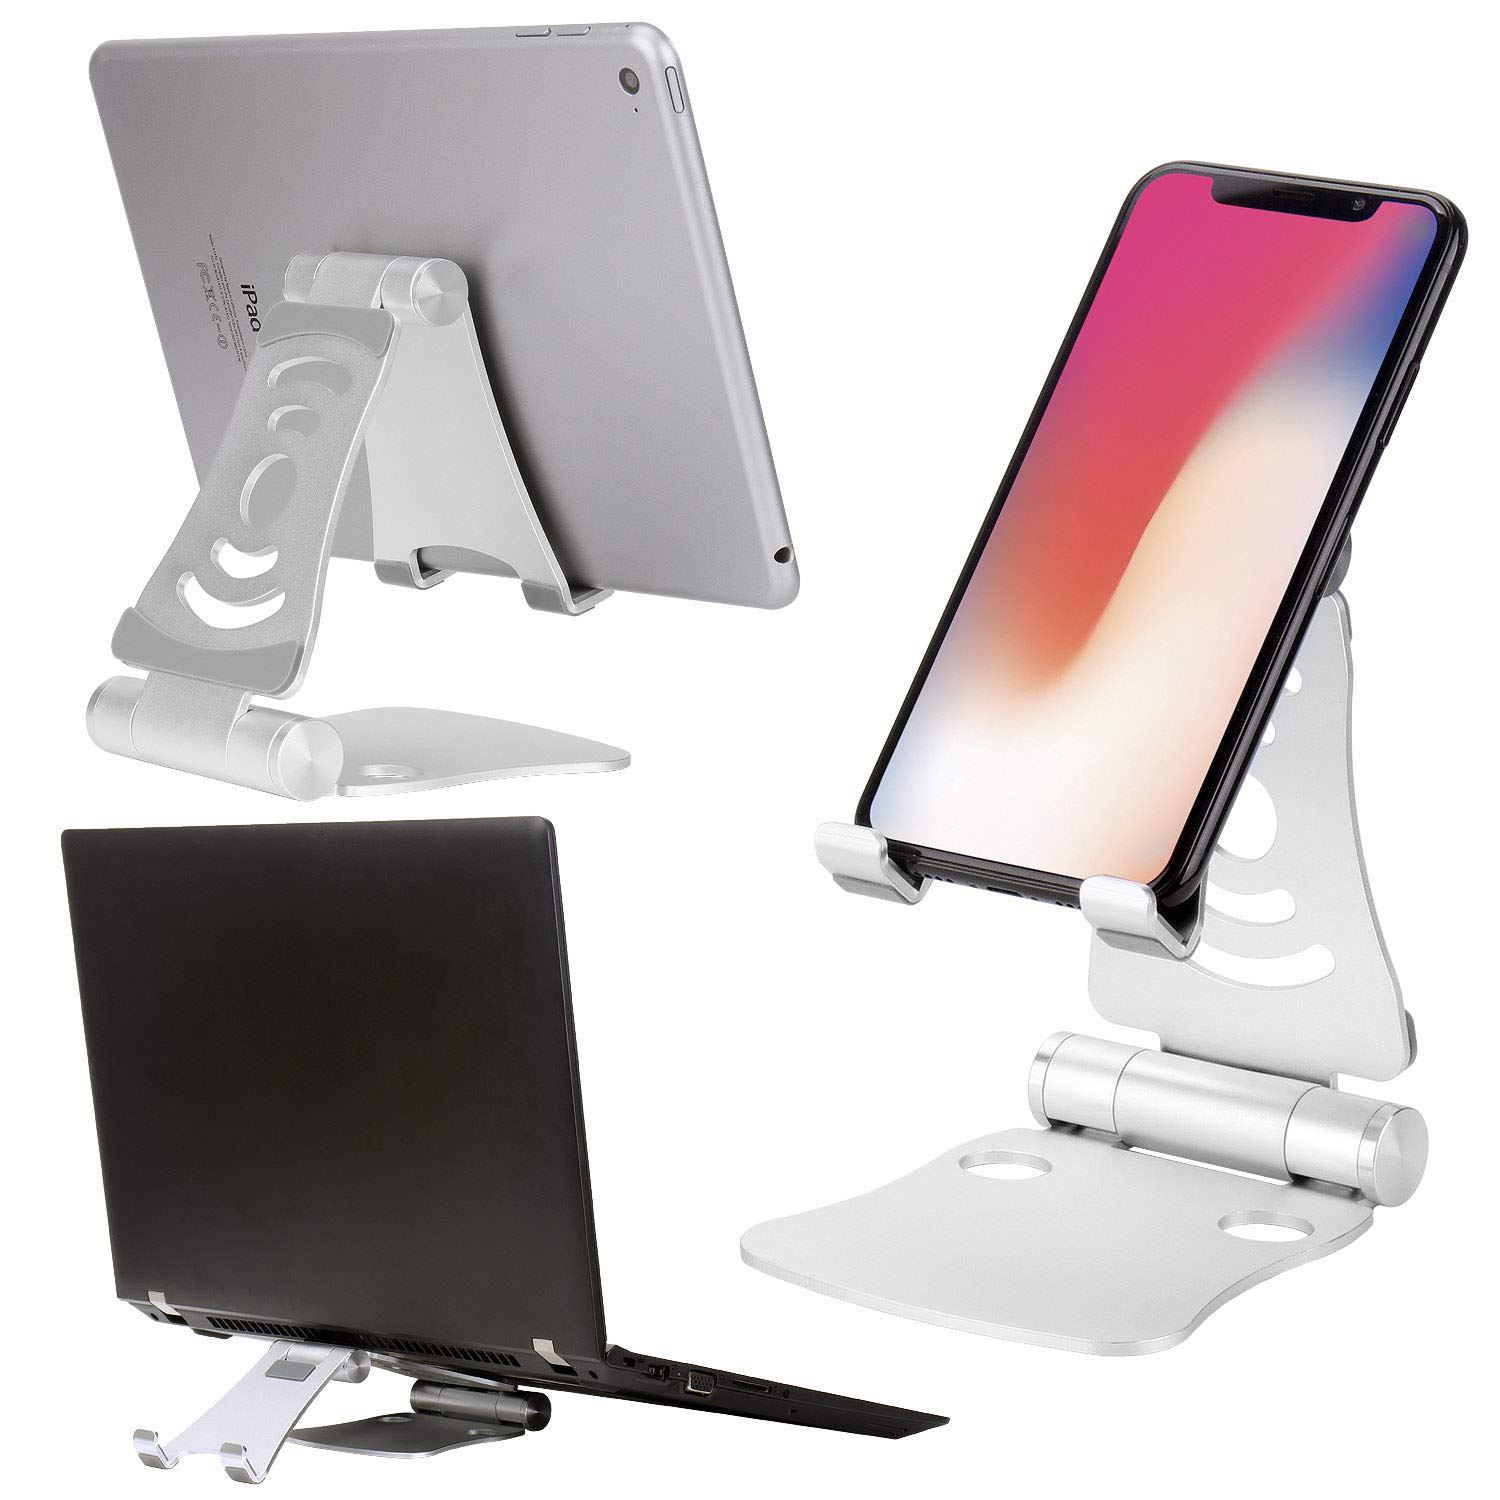 Super Stand For Nintendo Switch Peyou Tablet Laptop Phone Stand Adjustable Foldable Holder For Desk Compatible For Ipad Pro Air Interior Design Ideas Gentotryabchikinfo